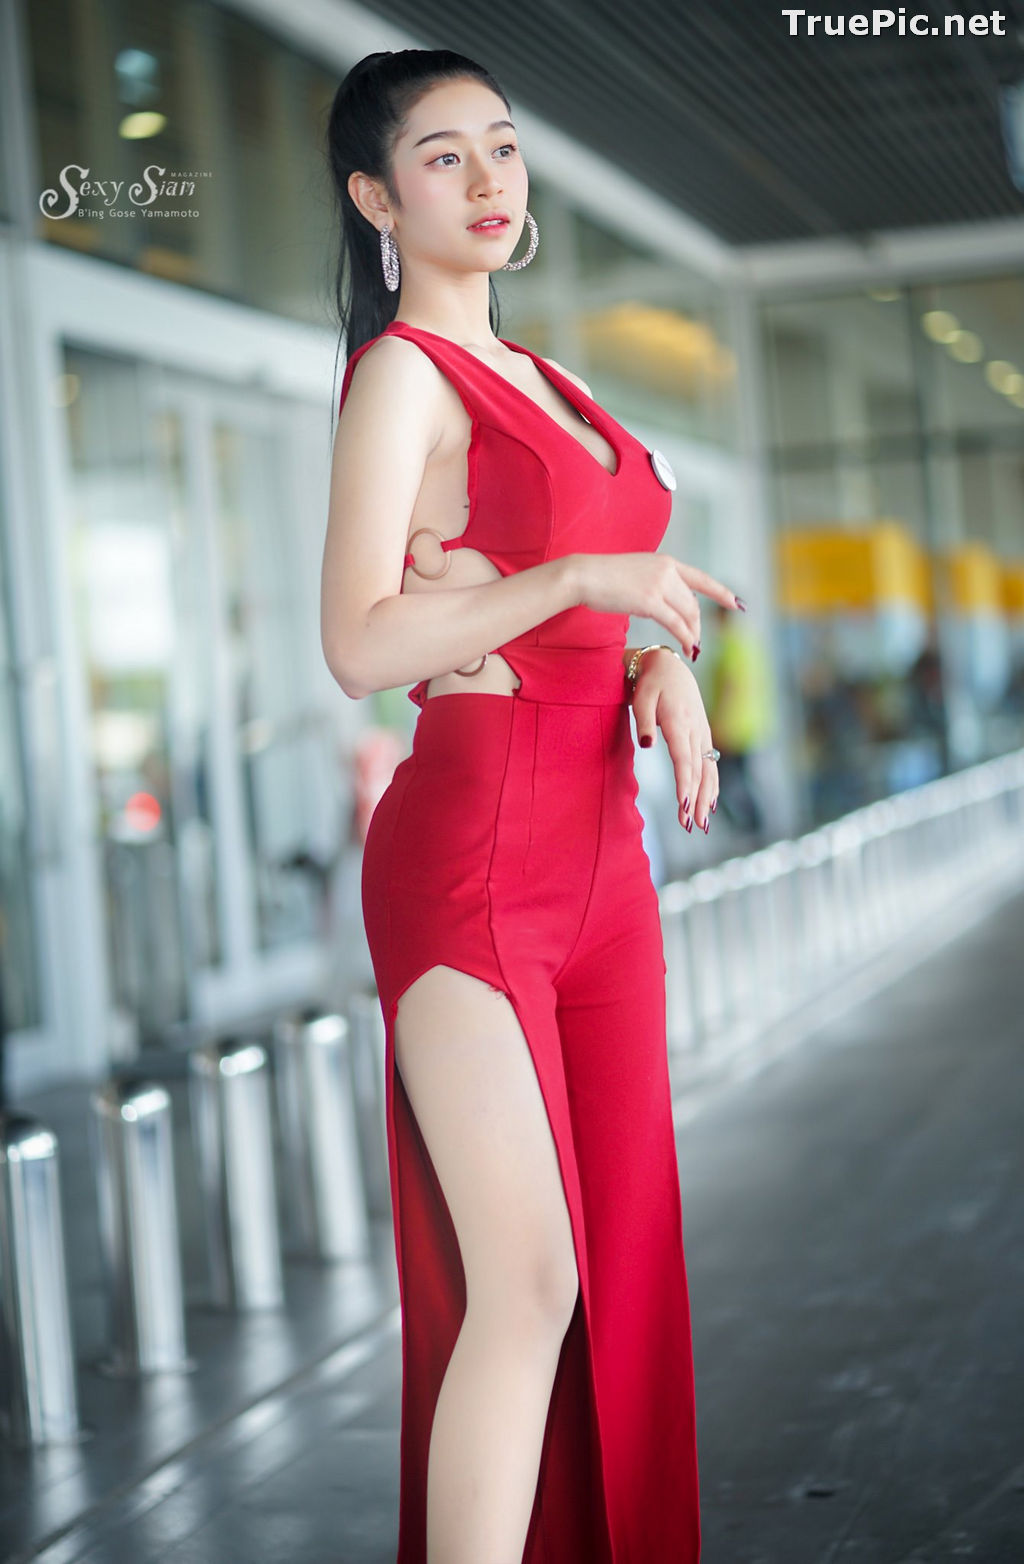 Image Thailand Model - วรารัตน์ มงคลทรง - From Red To Heart - TruePic.net - Picture-7